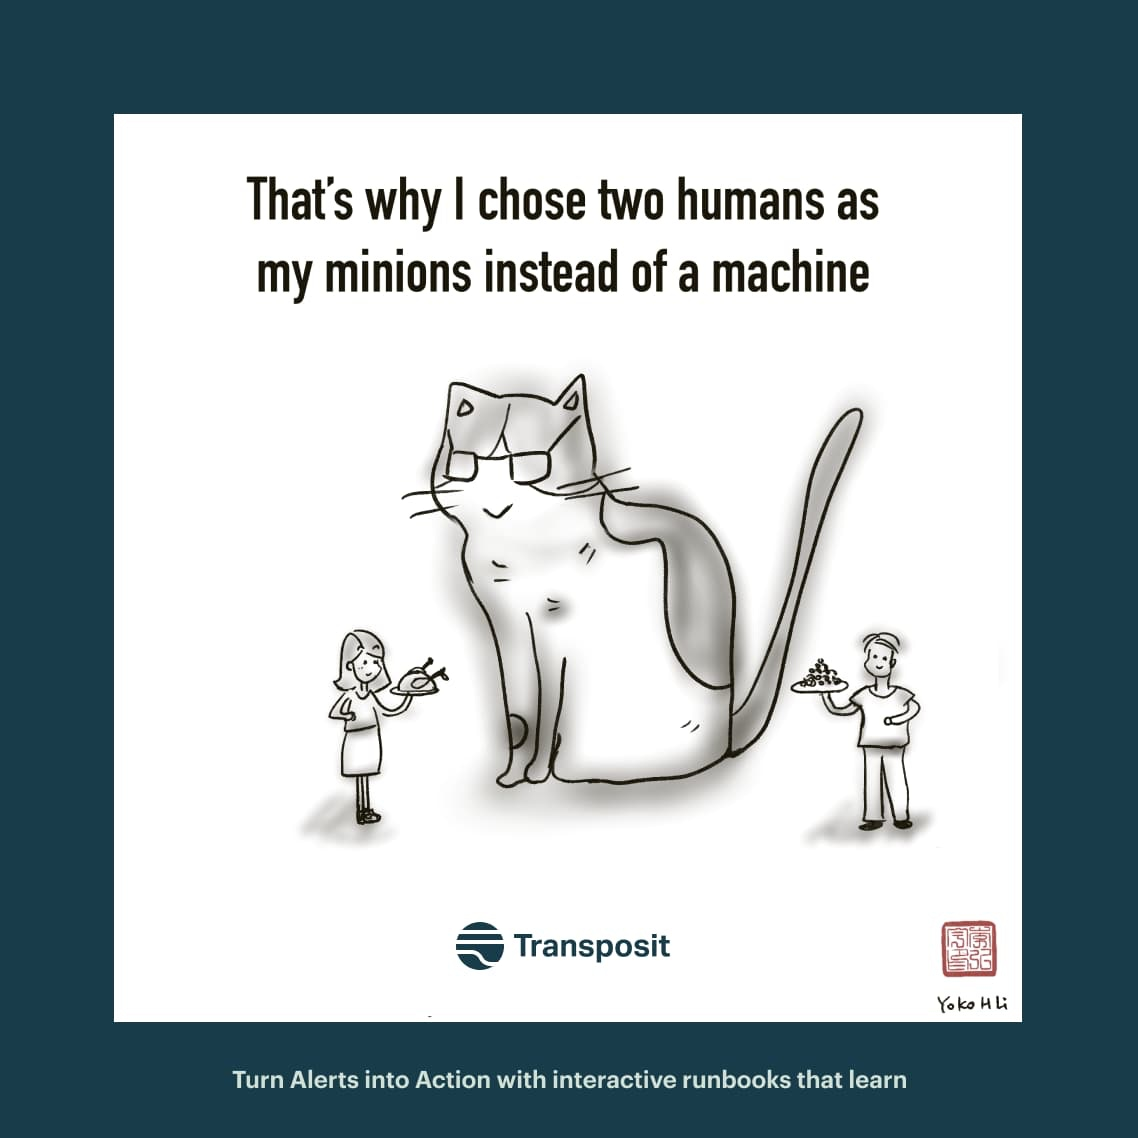 That's why I chose two humans as my minions instead of a machine